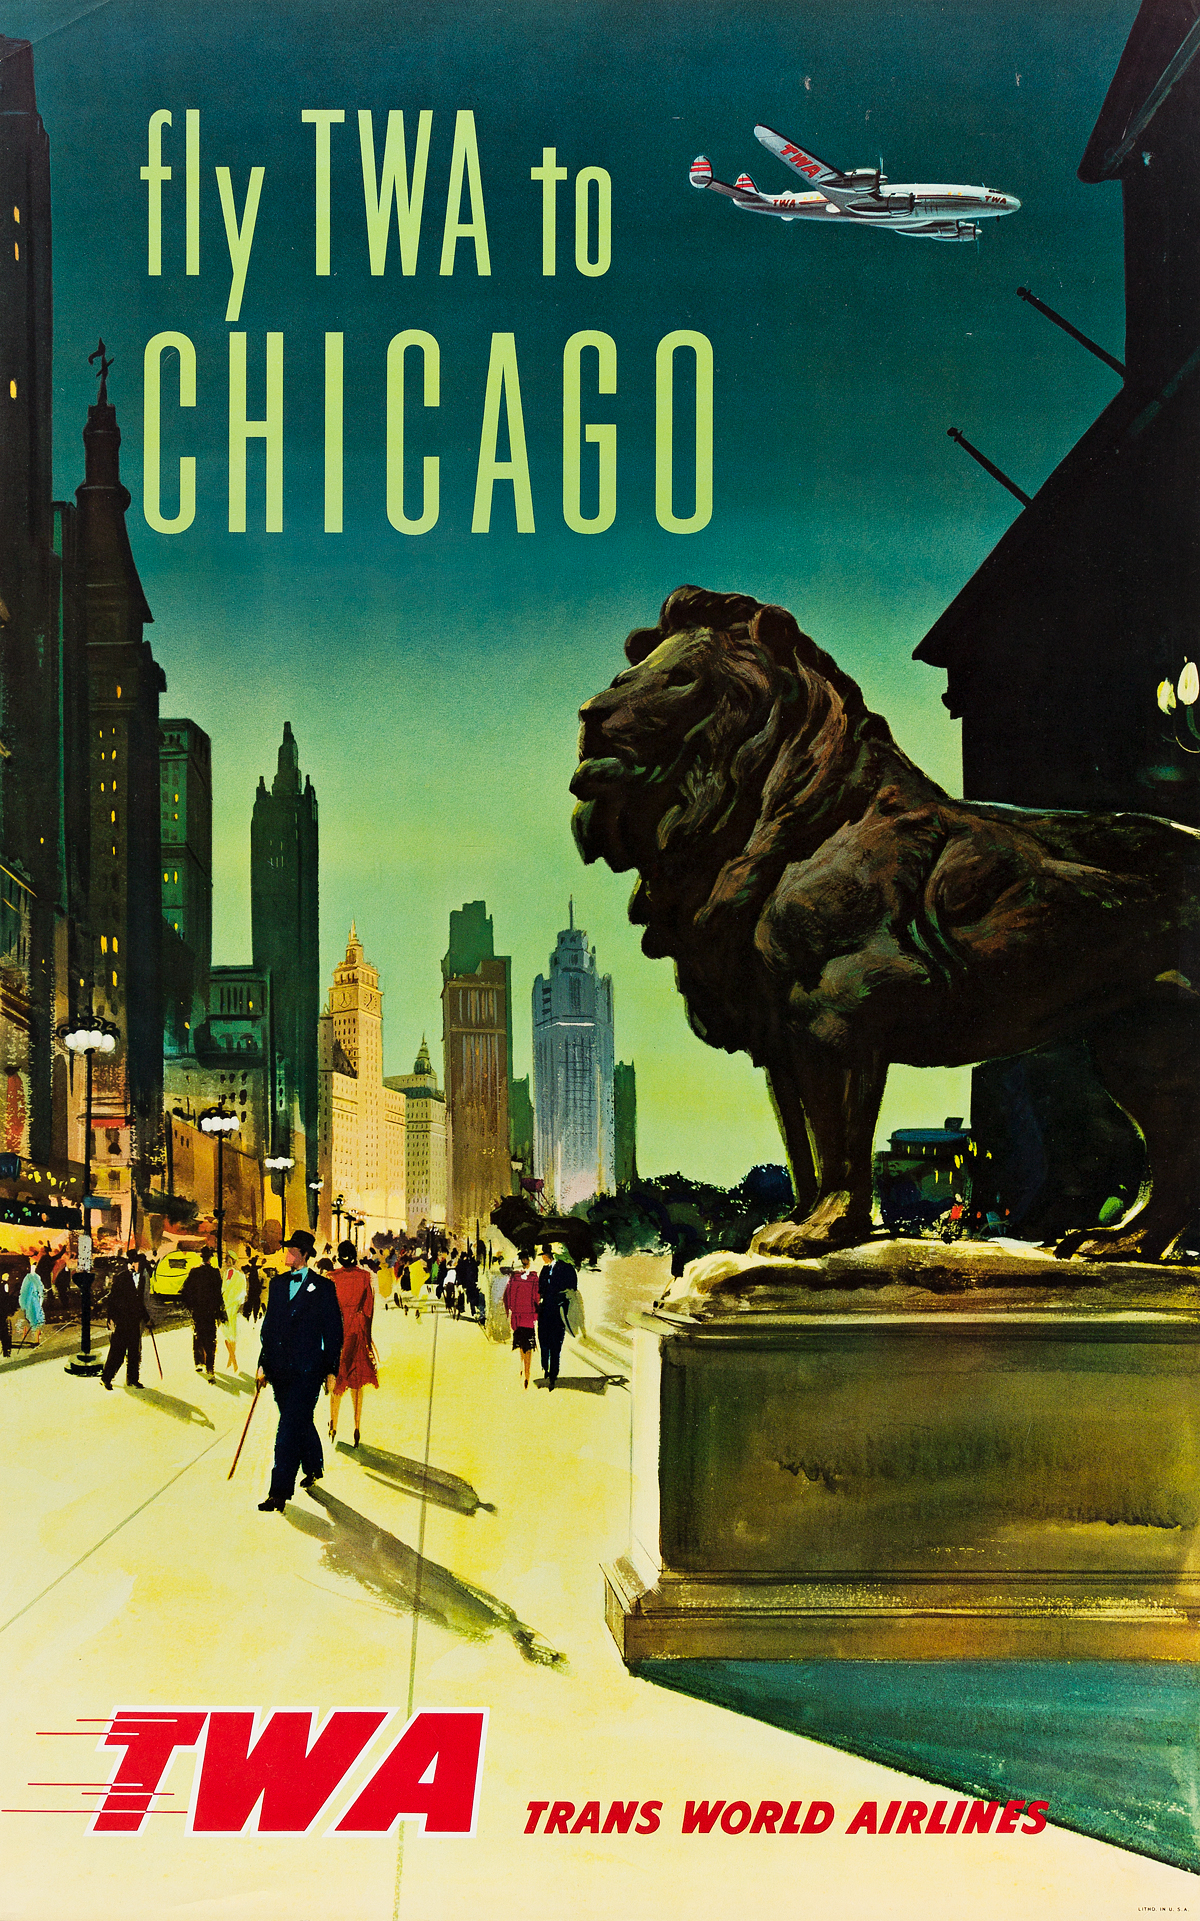 DESIGNER-UNKNOWN-FLY-TWA-TO-CHICAGO-1957-40x25-inches-101x63